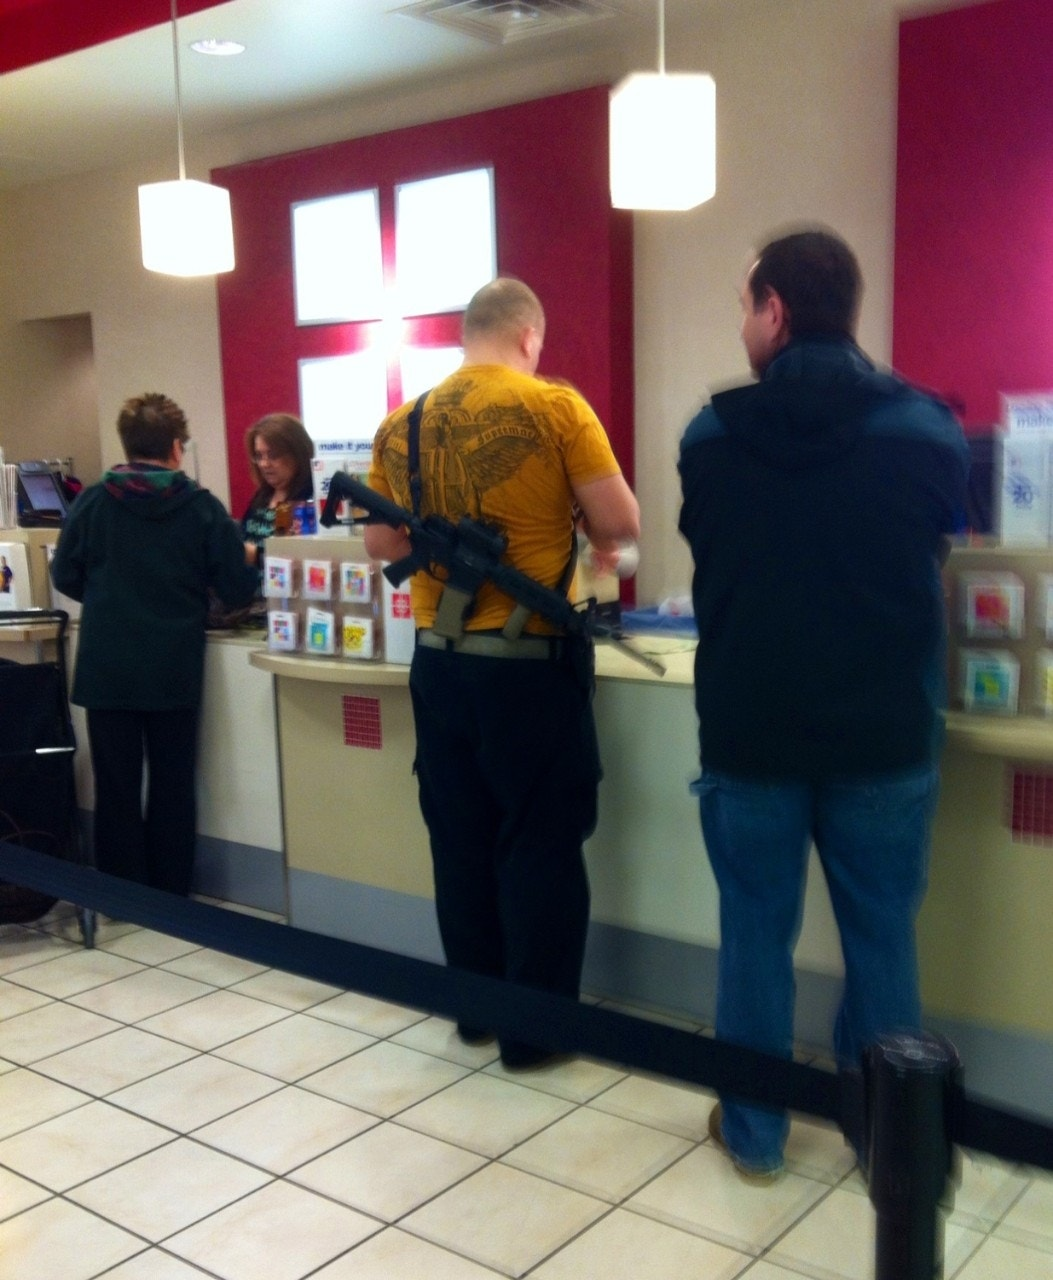 New Viral Videos 2013: Photos Of Man With Rifle In Utah J.C. Penney Store Go